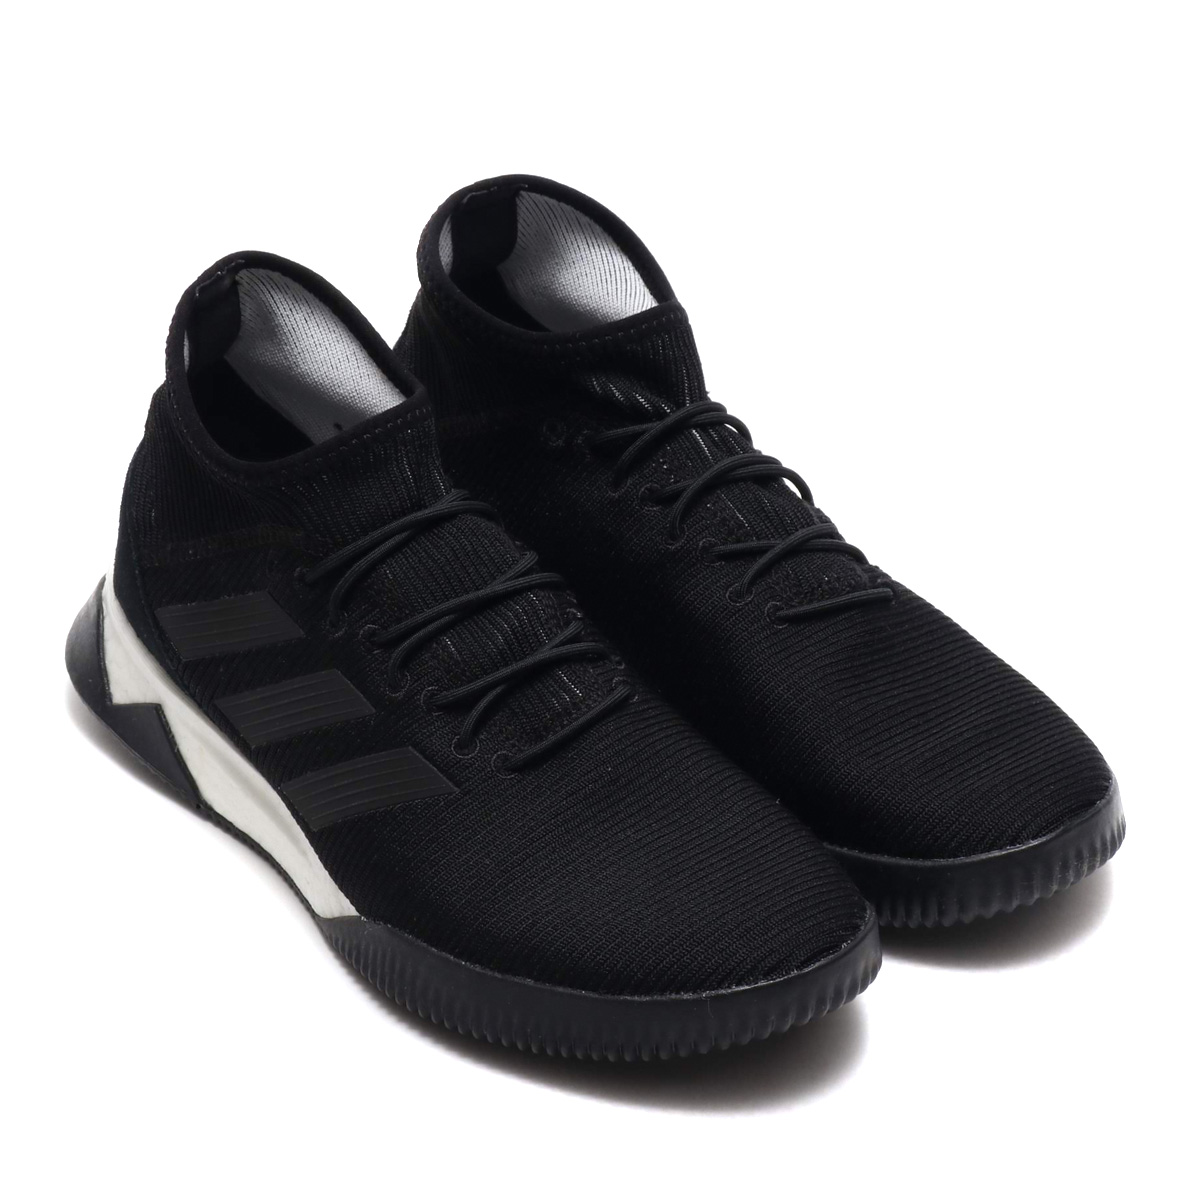 af9381dd1 I rule over the pitch and dominate it as a conqueror of the street. The  soccer shoes which had support power and the comfort that wore the socks  which got a ...